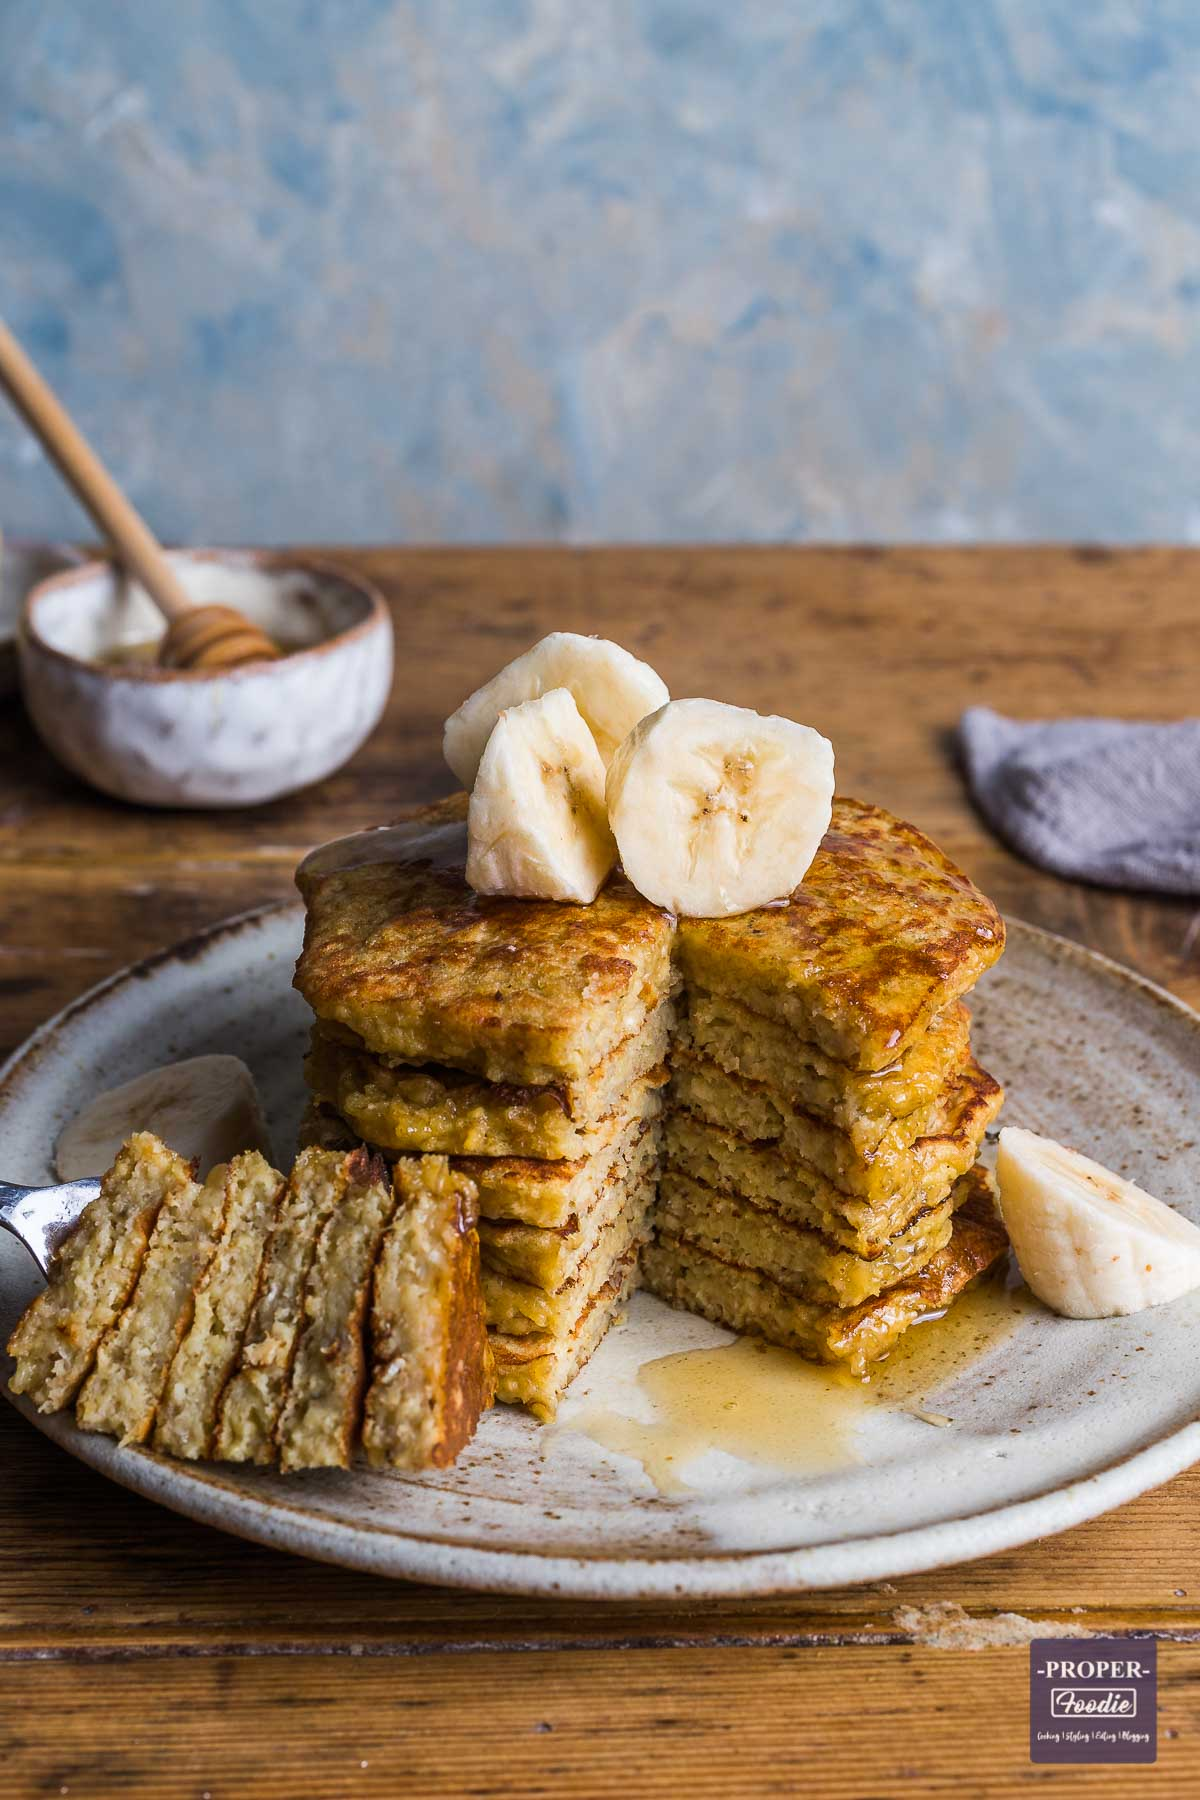 Stack of banana pancakes topped with sliced bananas, and with a wedge skewered and cut out from one side of the pancake stack and put to the side.